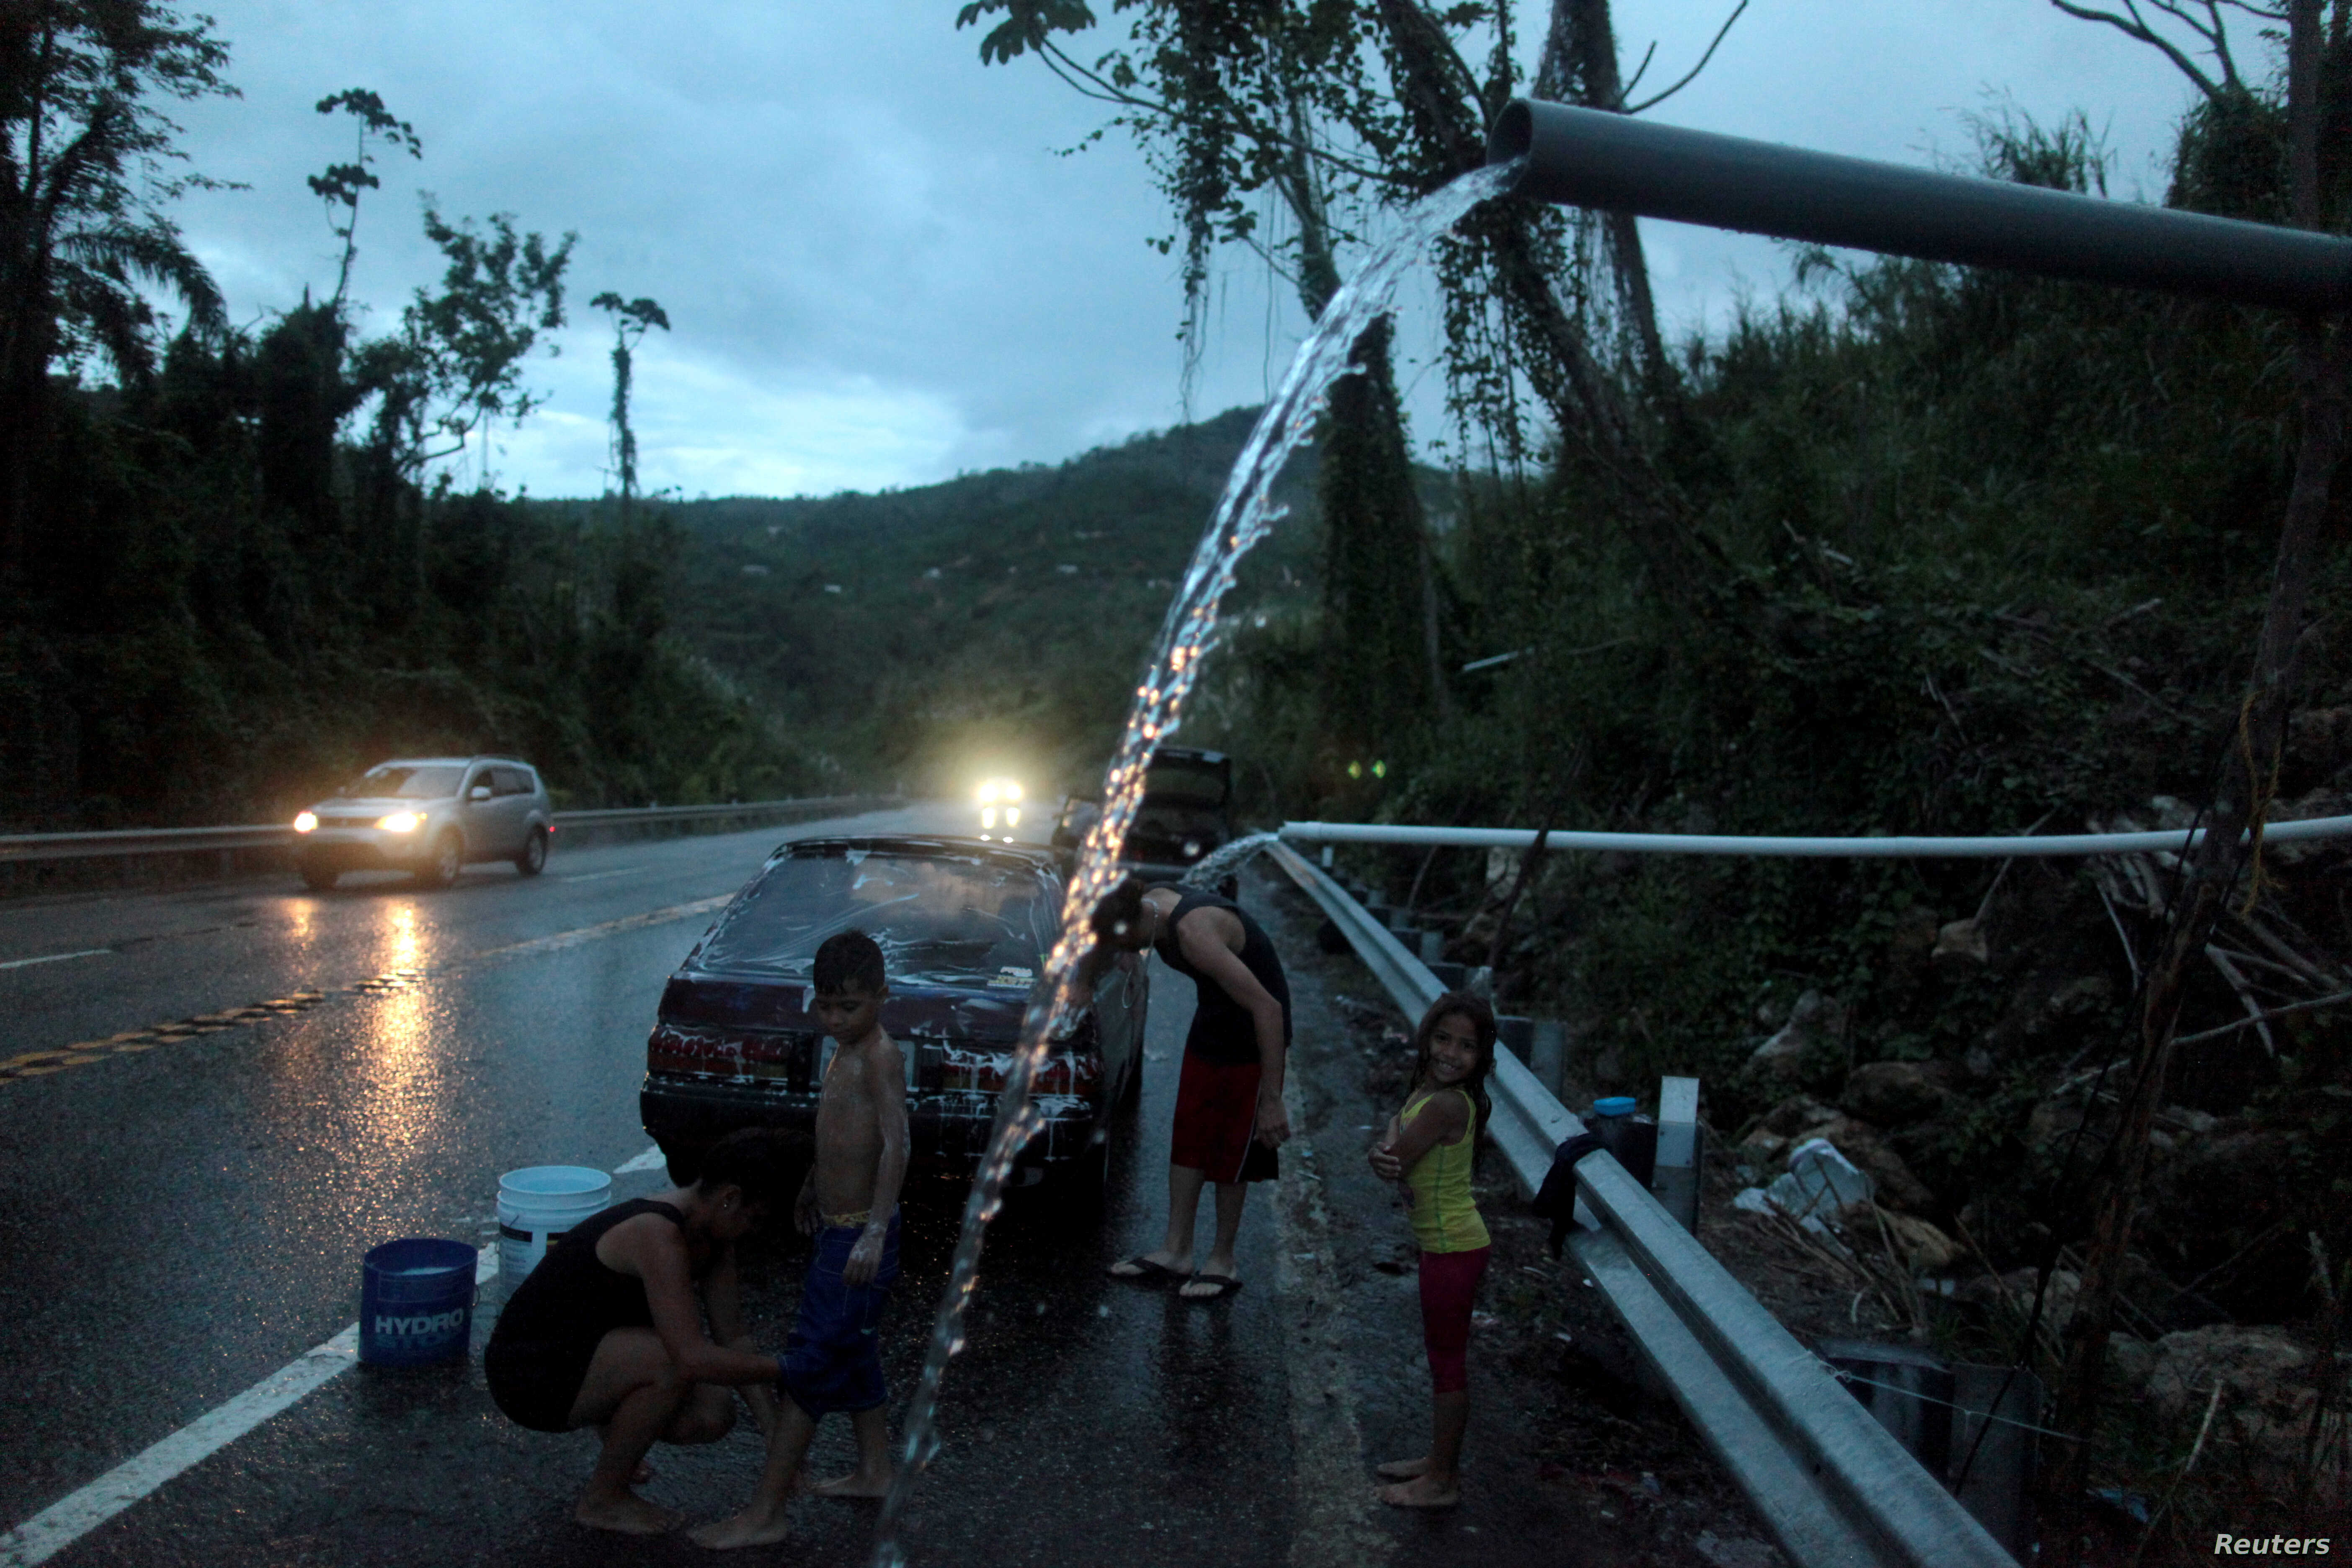 A family bathe and wash their car with mountain spring water in Utuado, Puerto Rico, Nov. 9, 2017, as the territory continues to deal with the aftermath of Hurricane Maria, which struck in September.